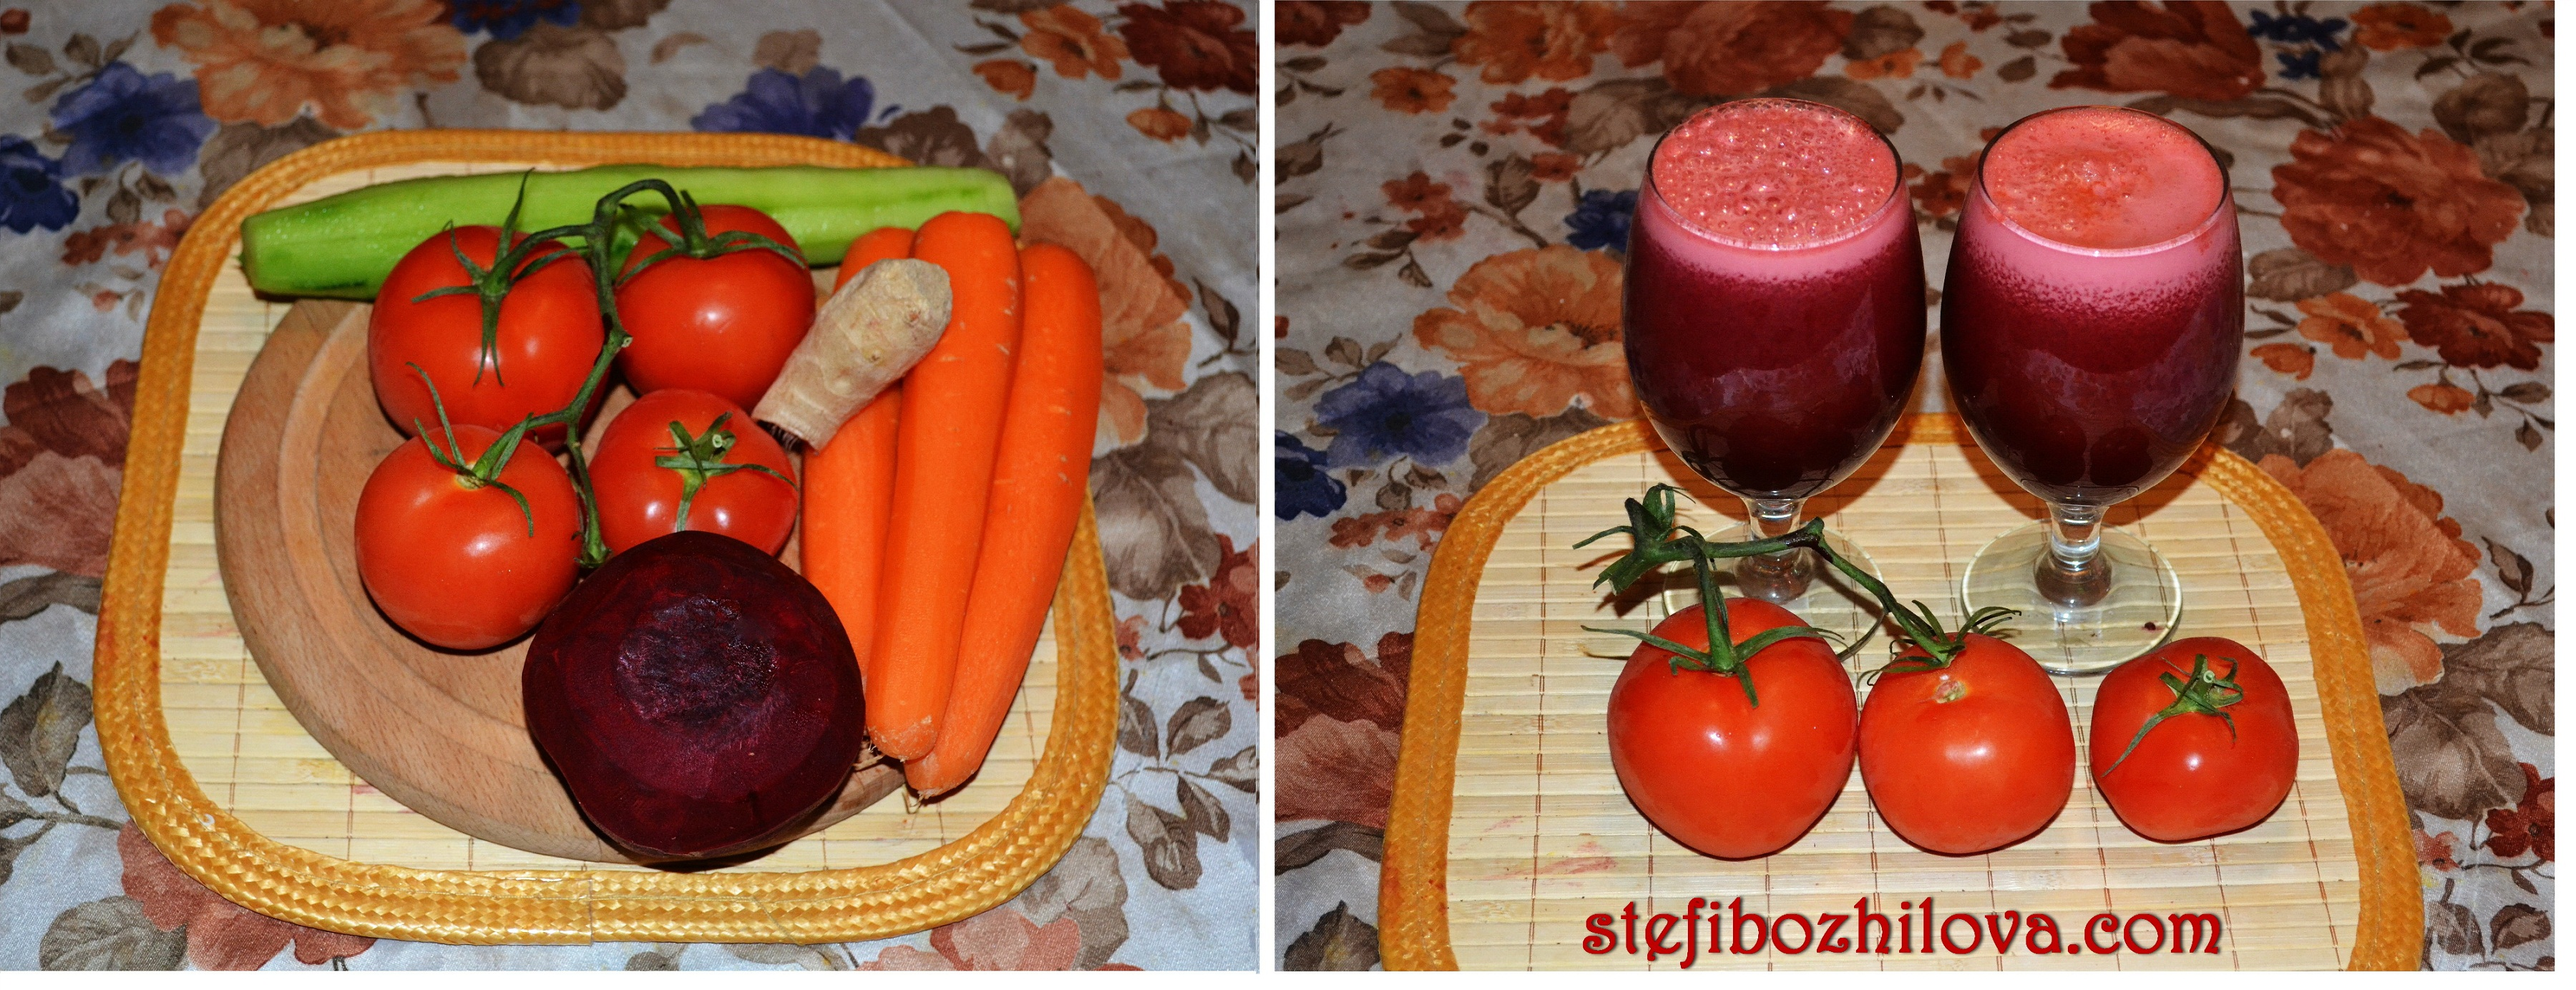 Carrot Tomato Beet Ginger Juice